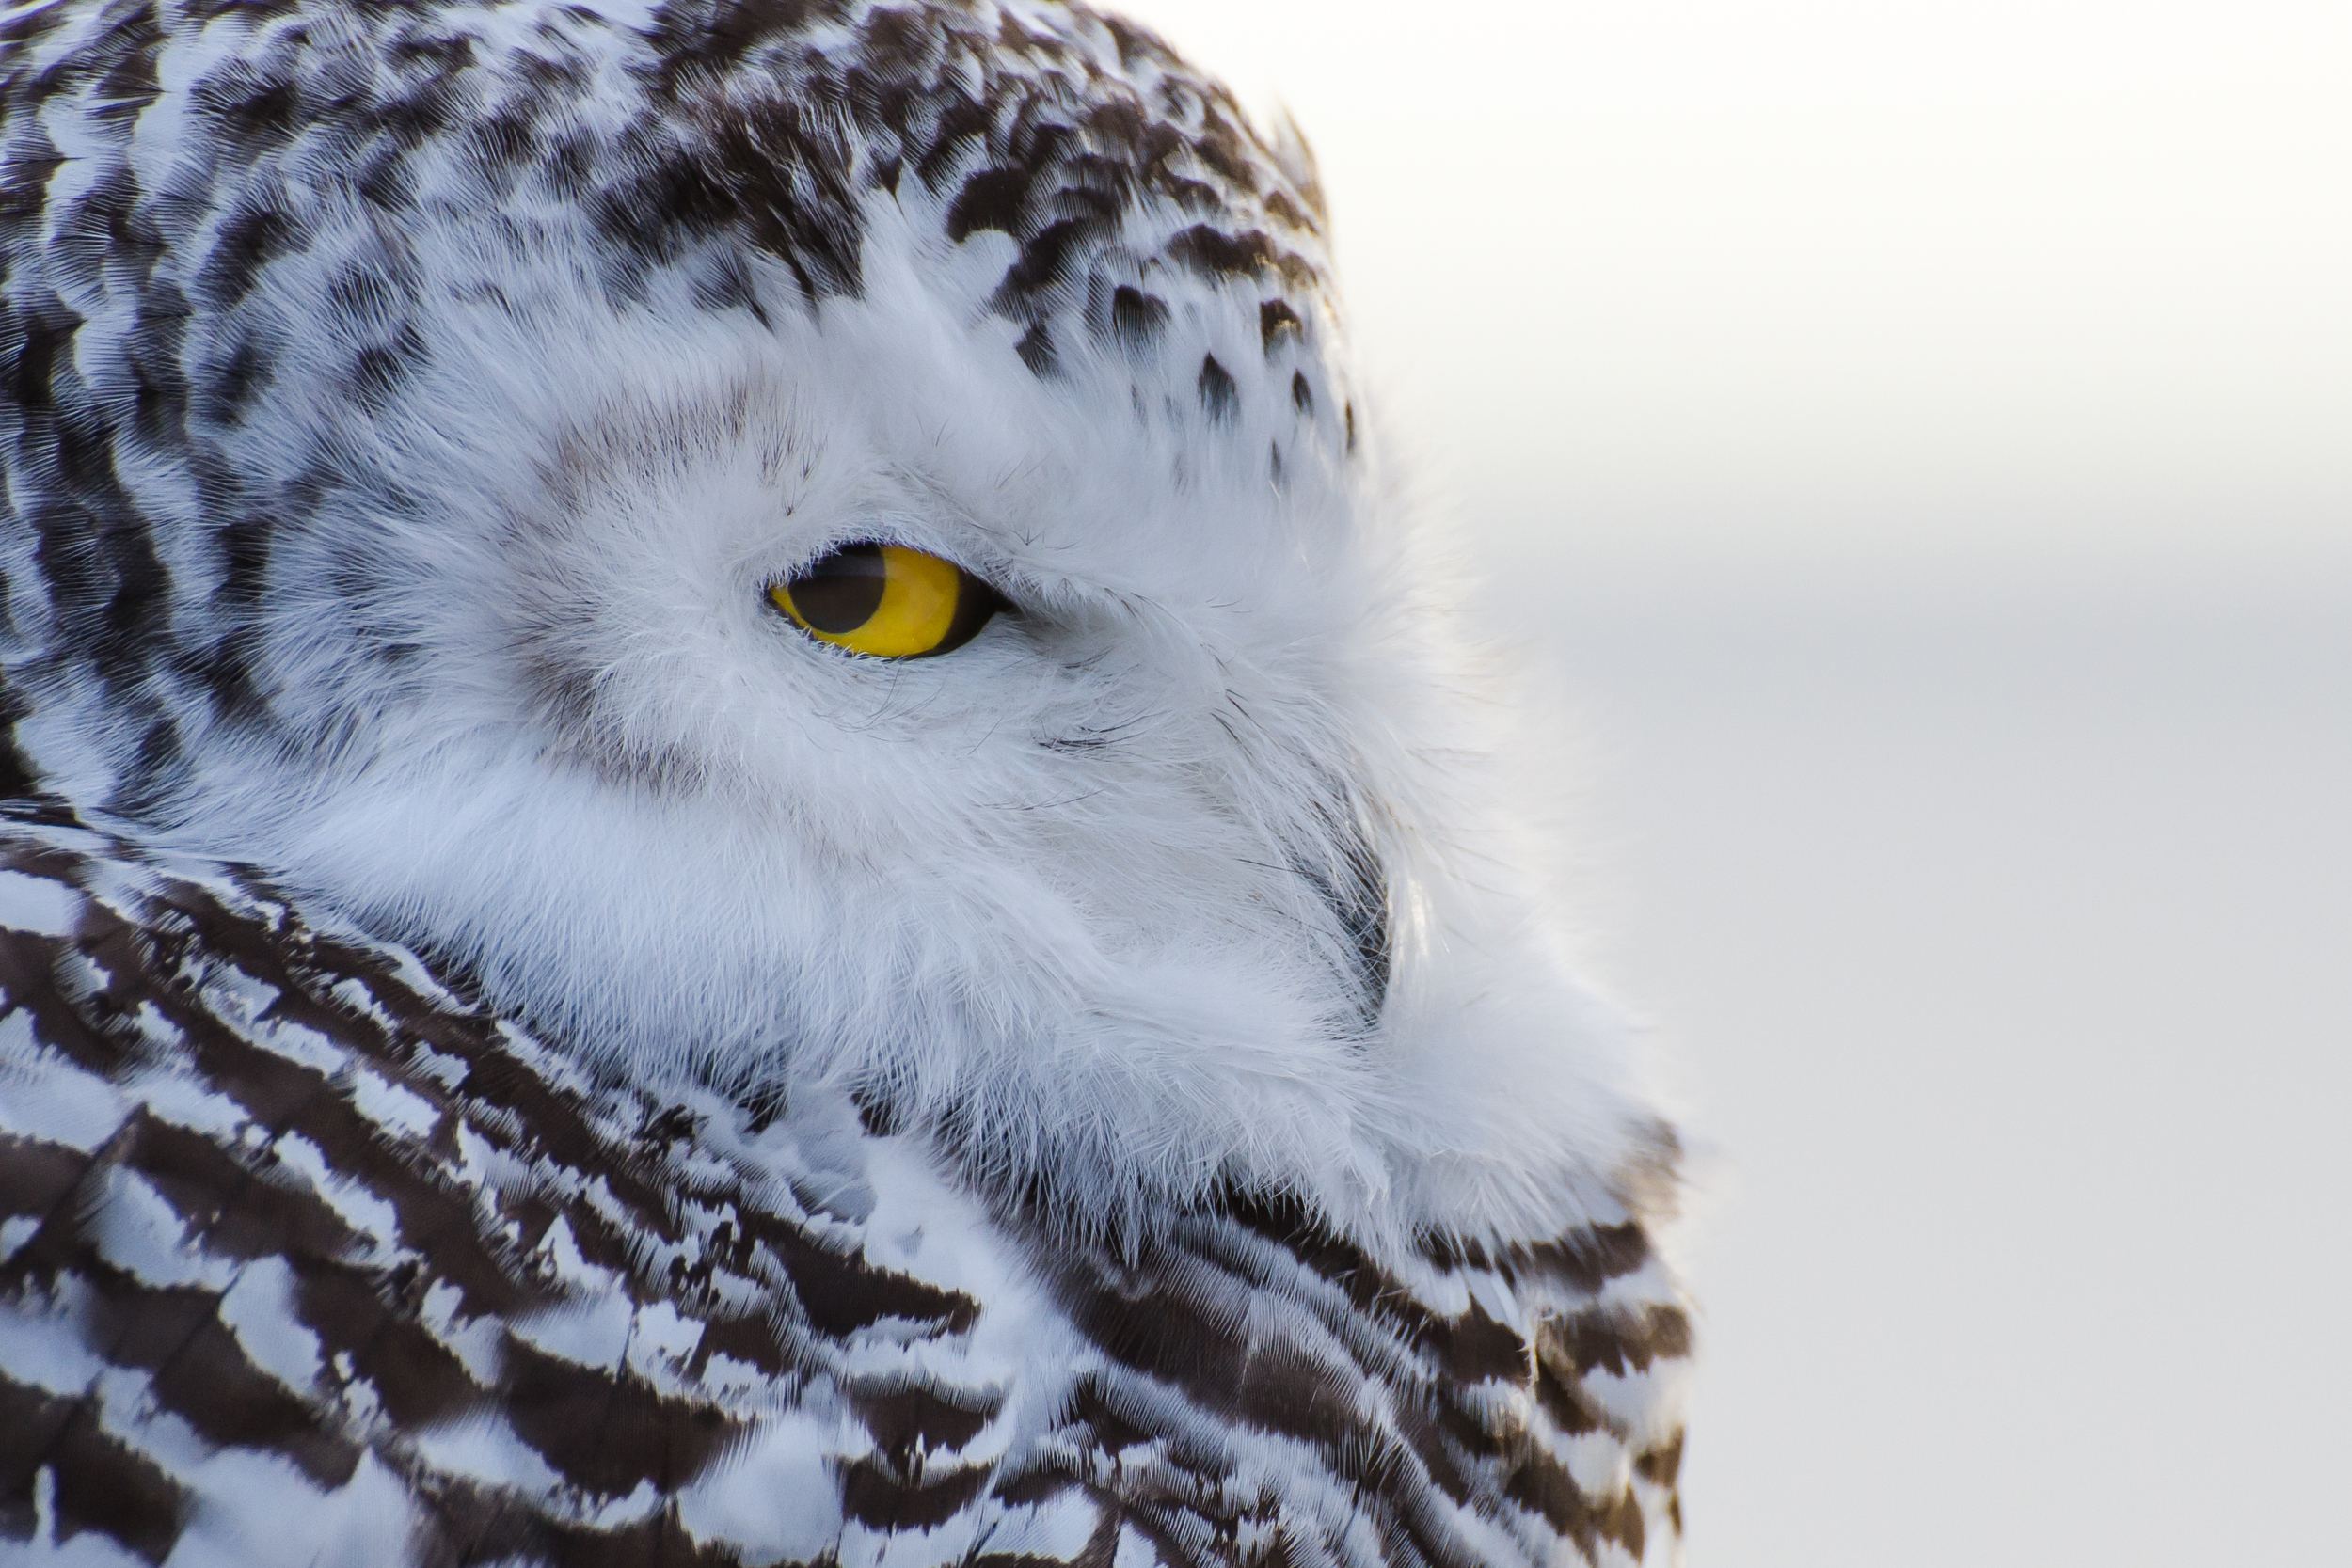 This snowy owl was super relaxed, but clearly it had it's eye on me.